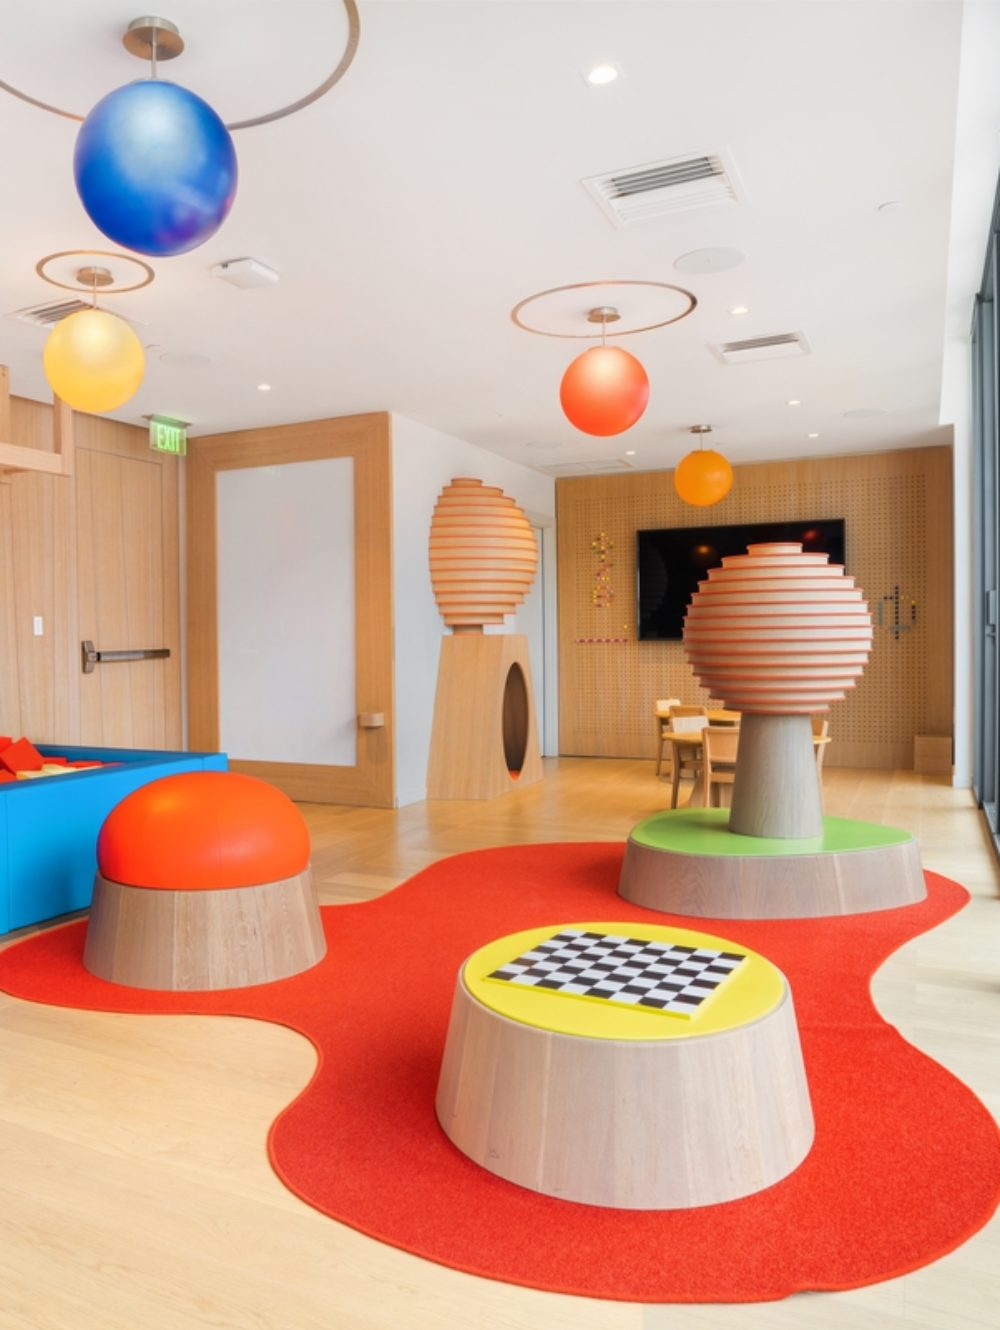 Interior view of Brickell Flatiron residence childrens playroom. Has a toy pit, checker board, and hanging solar system.